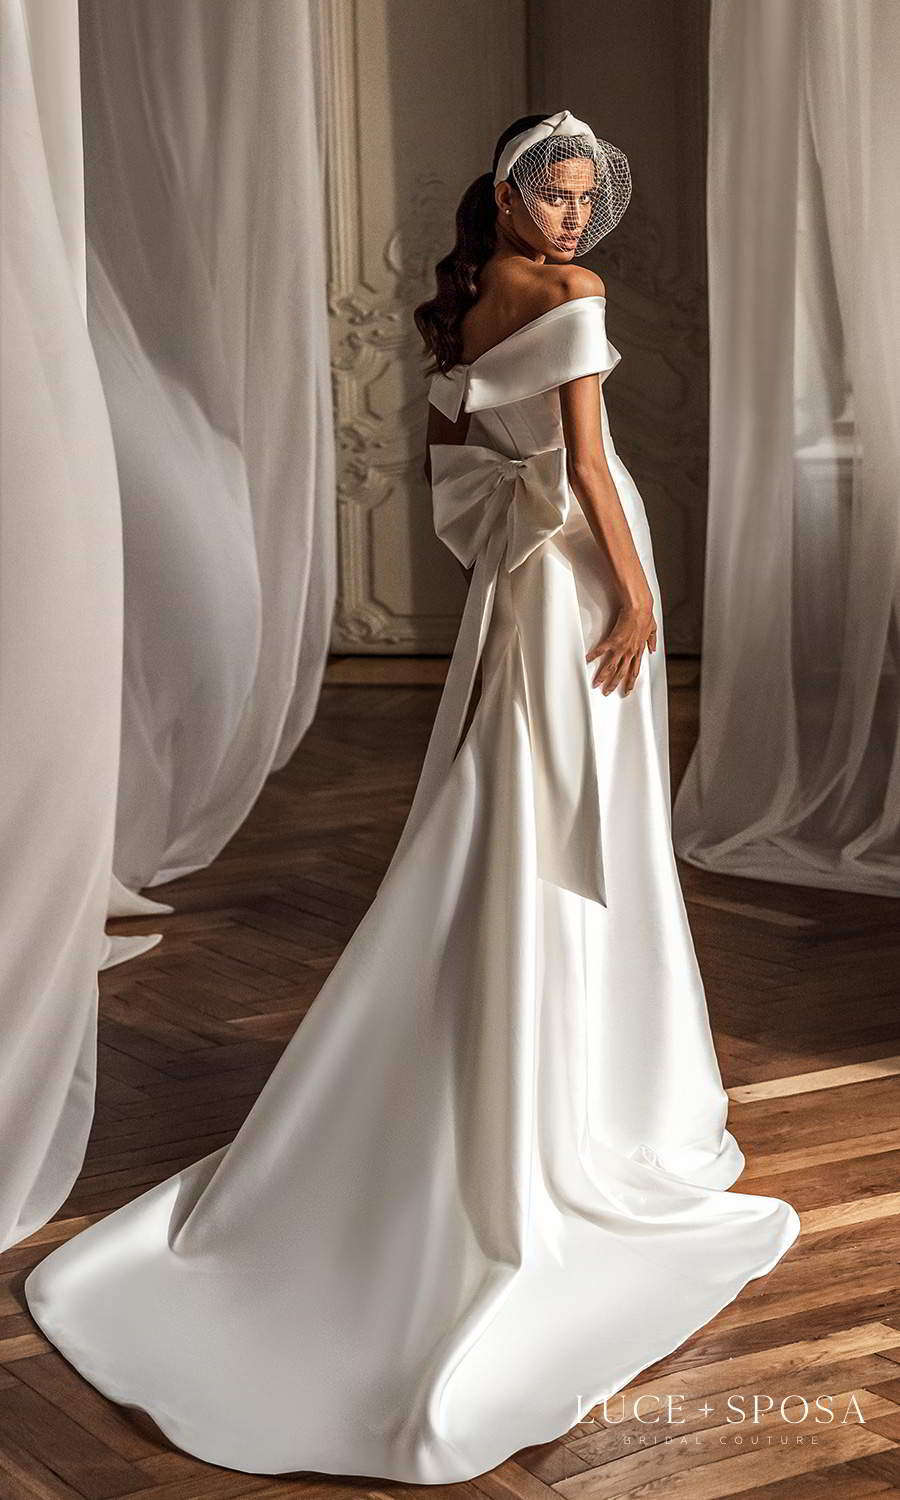 luce sposa 2021 shades of couture bridal off shoulder sleeves surplice sweetheartneckline clean minimalist trumpet modified a line wedding dress chapel train overskirt bow back (emerson) bv